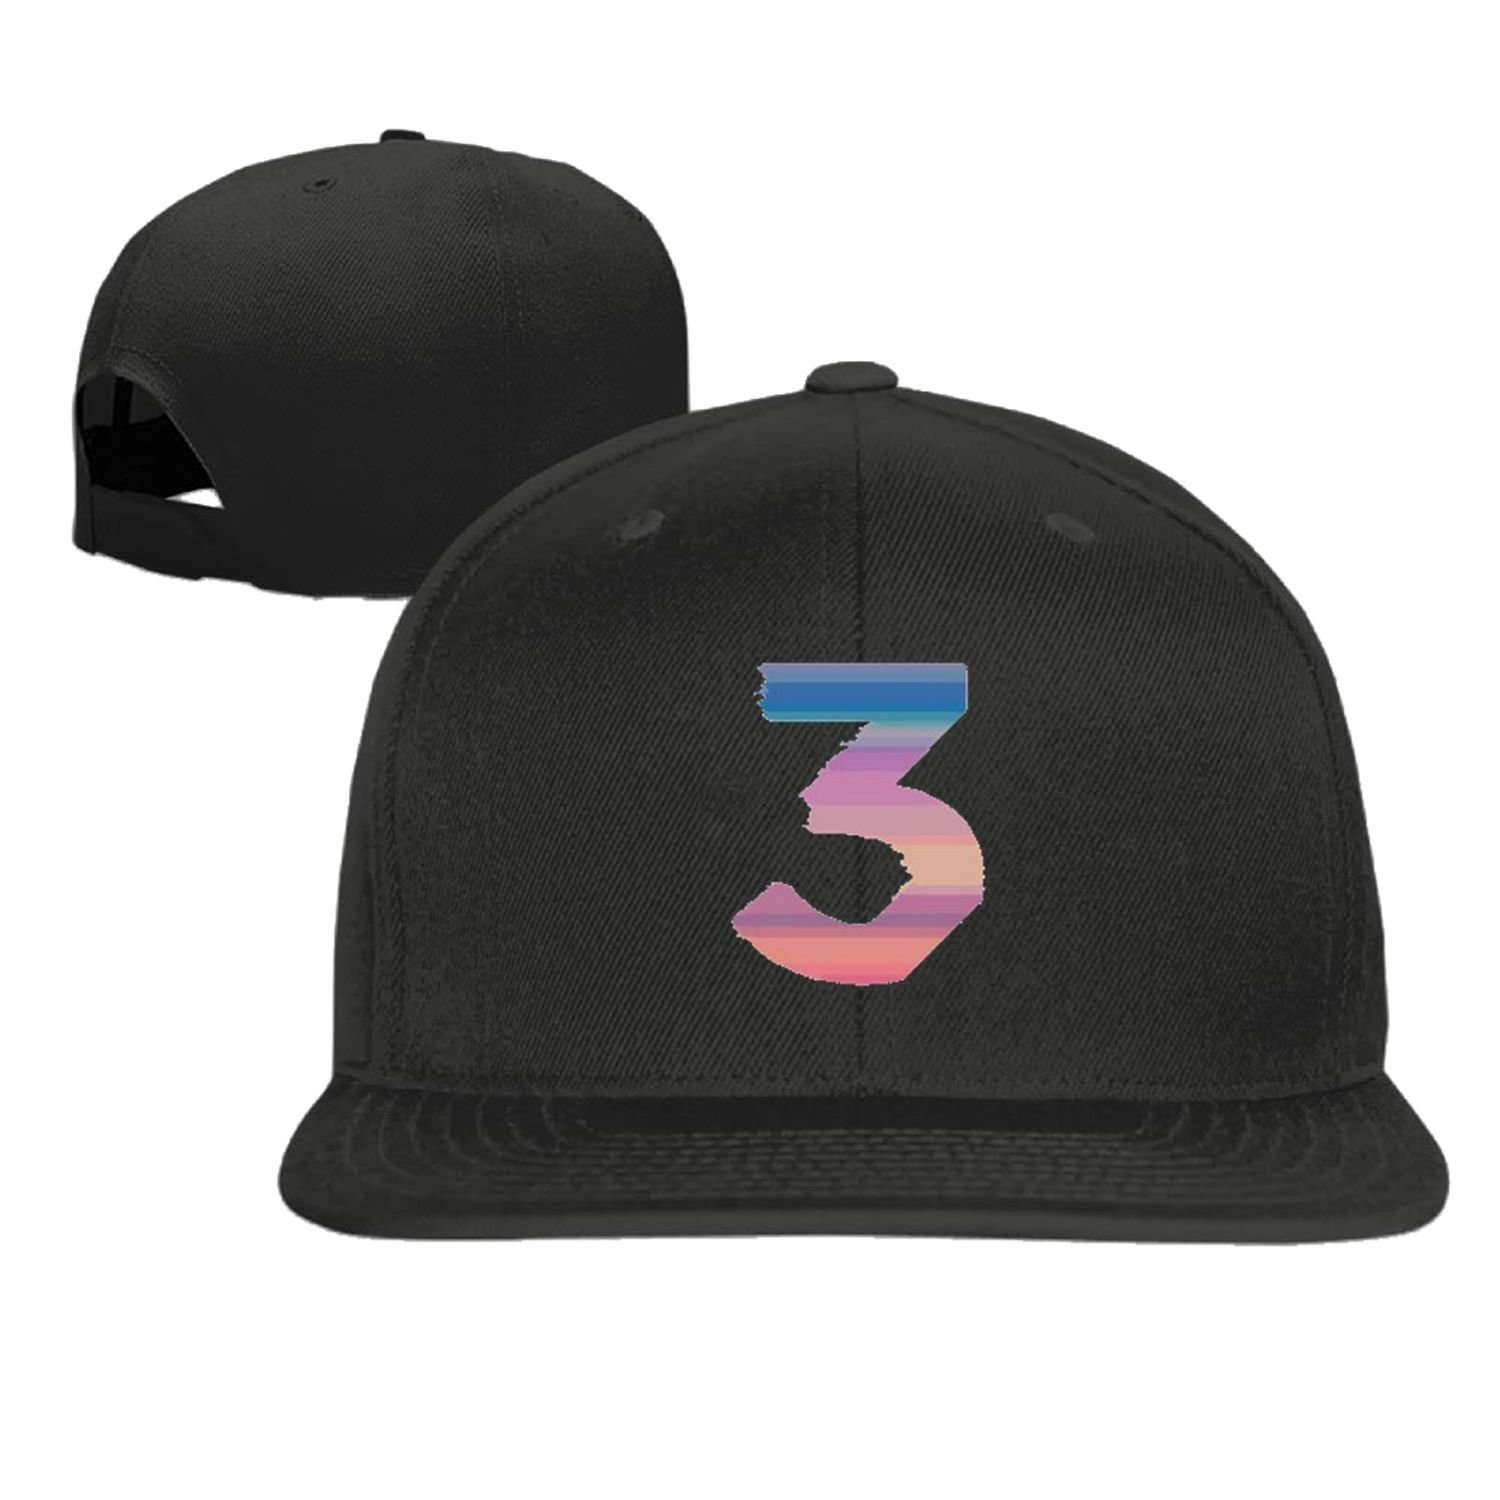 Coloring book chance the rapper hat - Baseball Cap Hip Hop Hat Chance The Rapper Number 3 Cap Black 5 Colors Amazon Ca Clothing Accessories